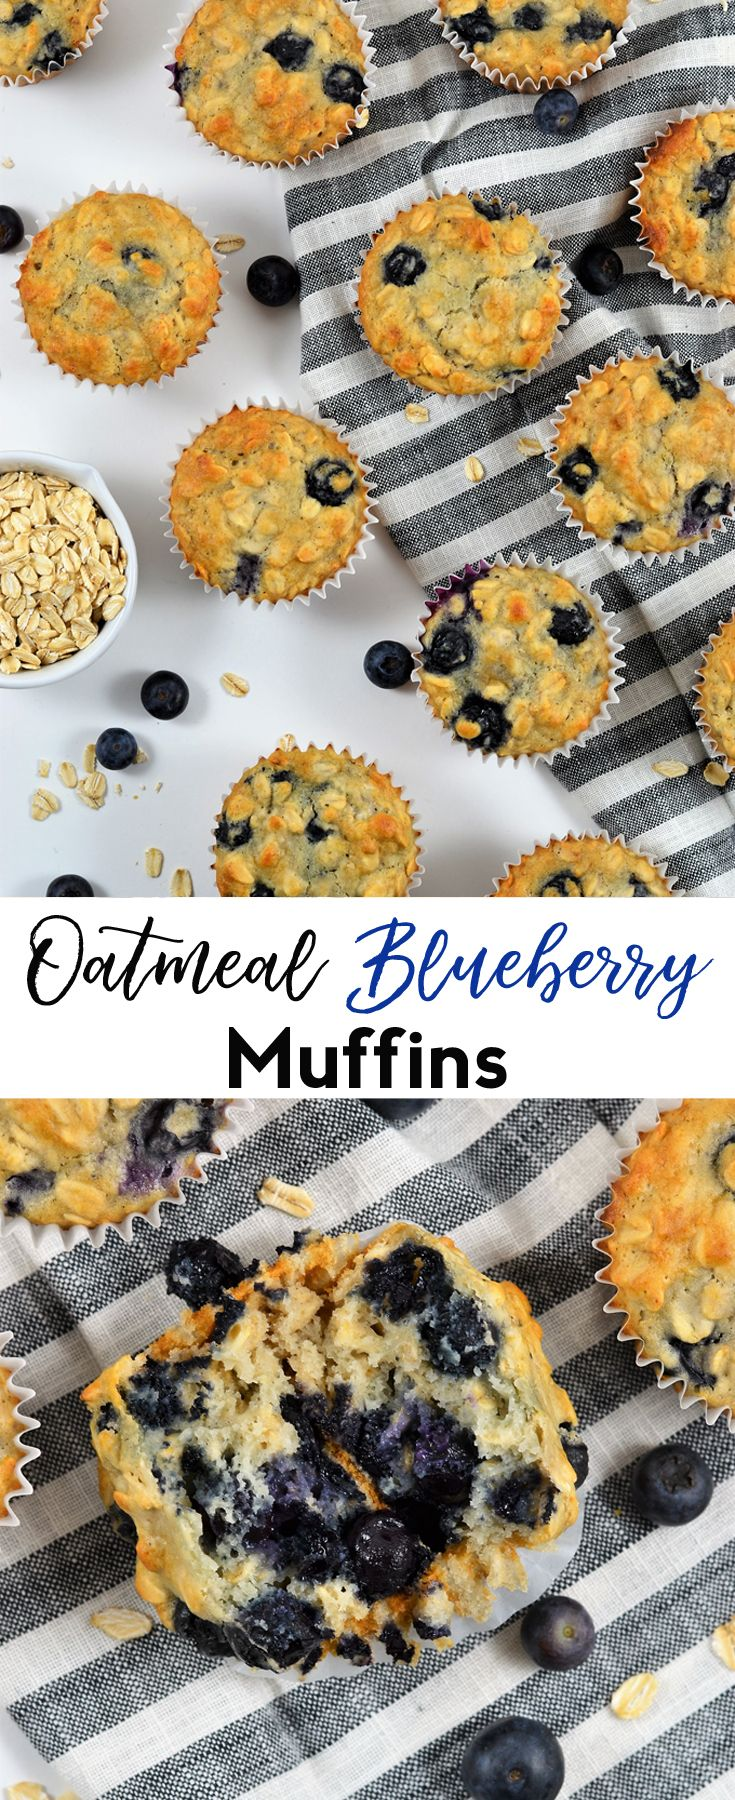 Healthier Oatmeal Blueberry Muffins #healthyliving